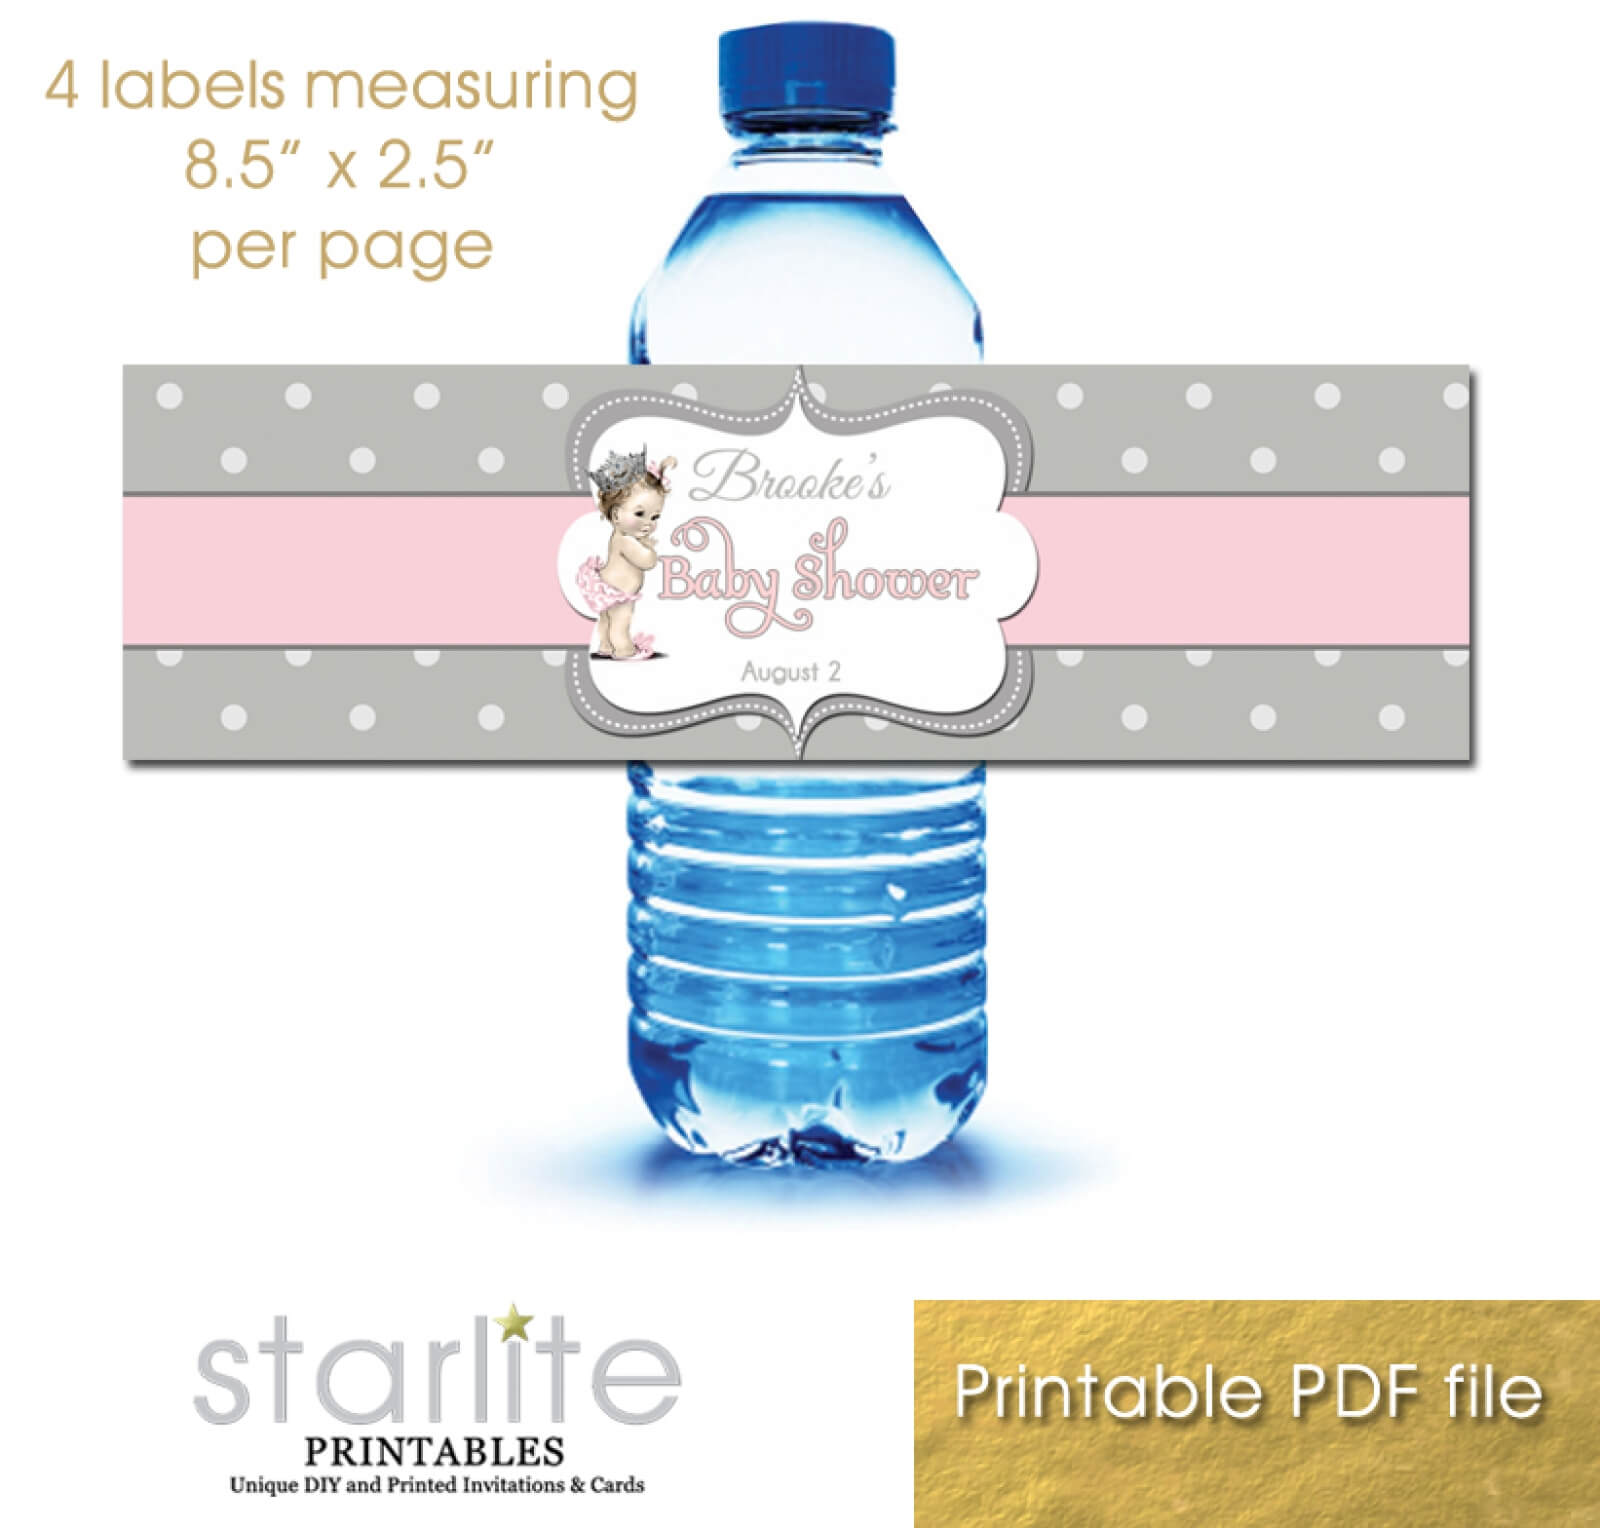 008 Template Ideas Vp Btl Pkgr Dots Water Bottle Labels Free Intended For Baby Shower Water Bottle Labels Template